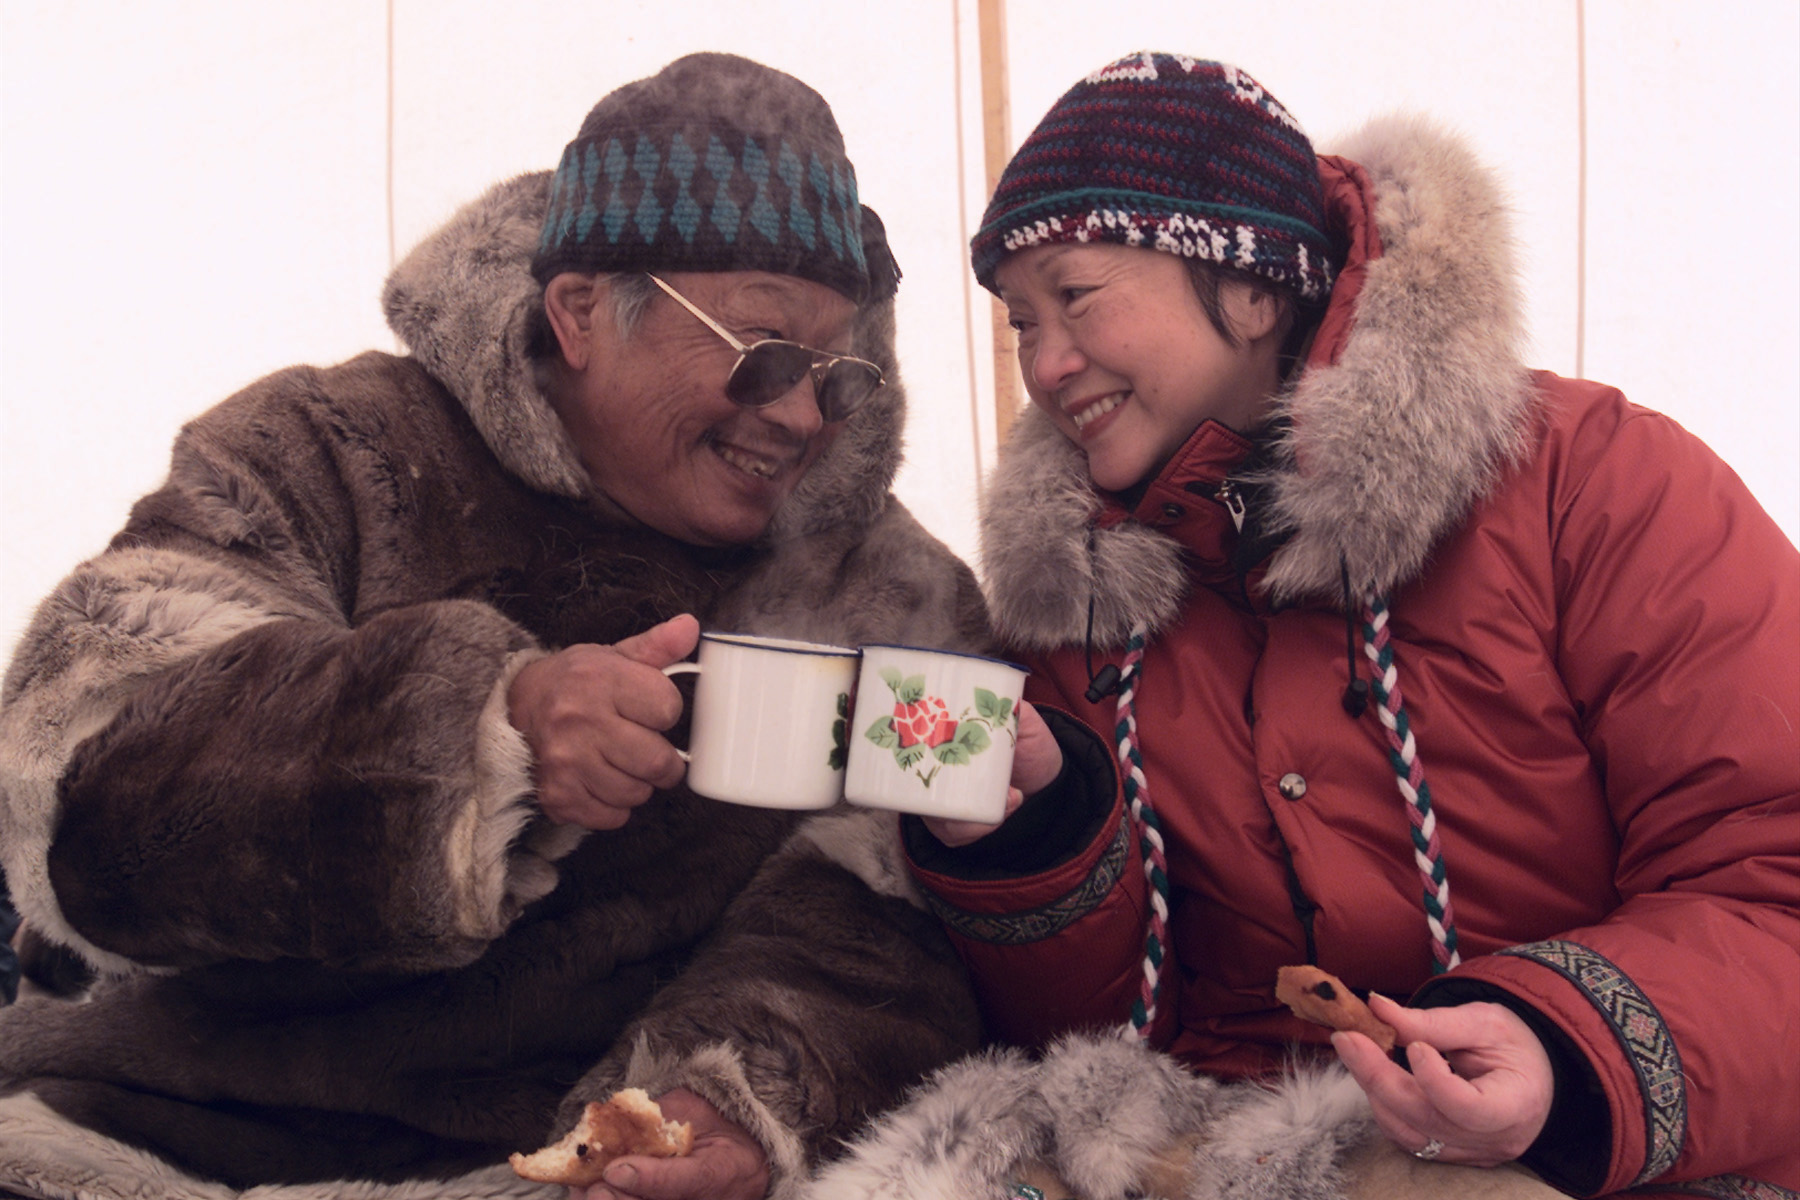 Governor General Adrienne Clarkson shares a cup of iceberg tea with Inuit elder Abraham Pijamini (Grise Fiord, Nunavut). Date: April 3, 2000. Photographer: Sgt Julien Dupuis, Rideau Hall. Reference: N/A.